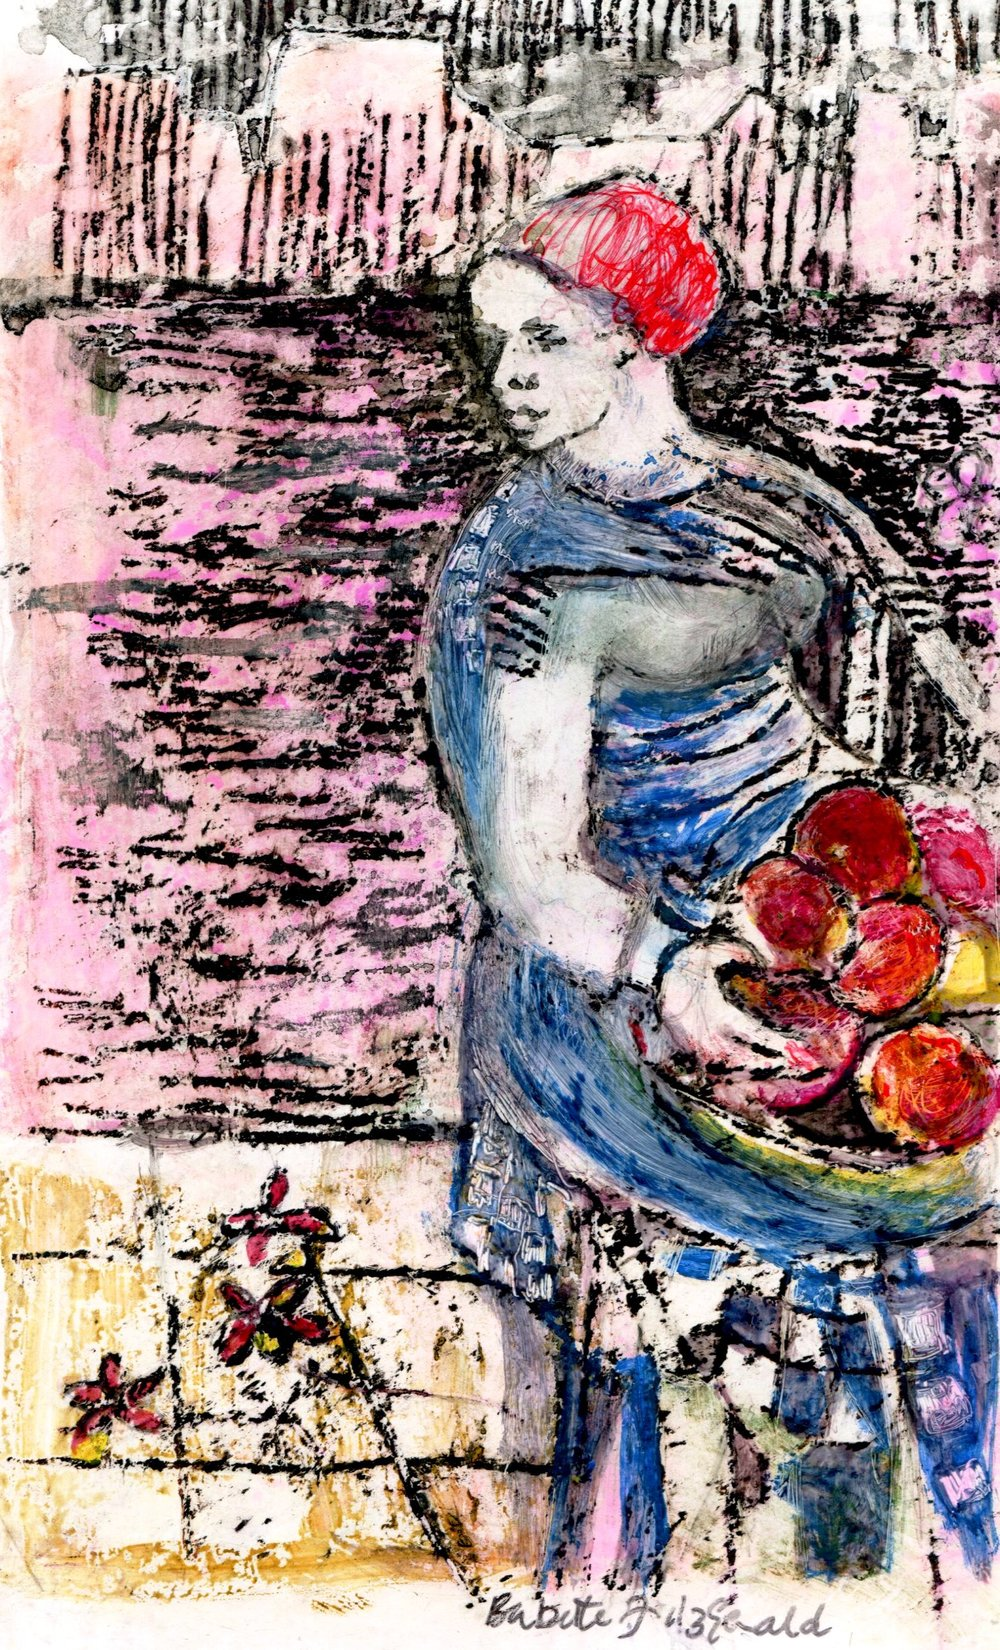 56A BABETTE FITZGERALD, FRUIT SELLER, MIXED MEDIA ON PAPER